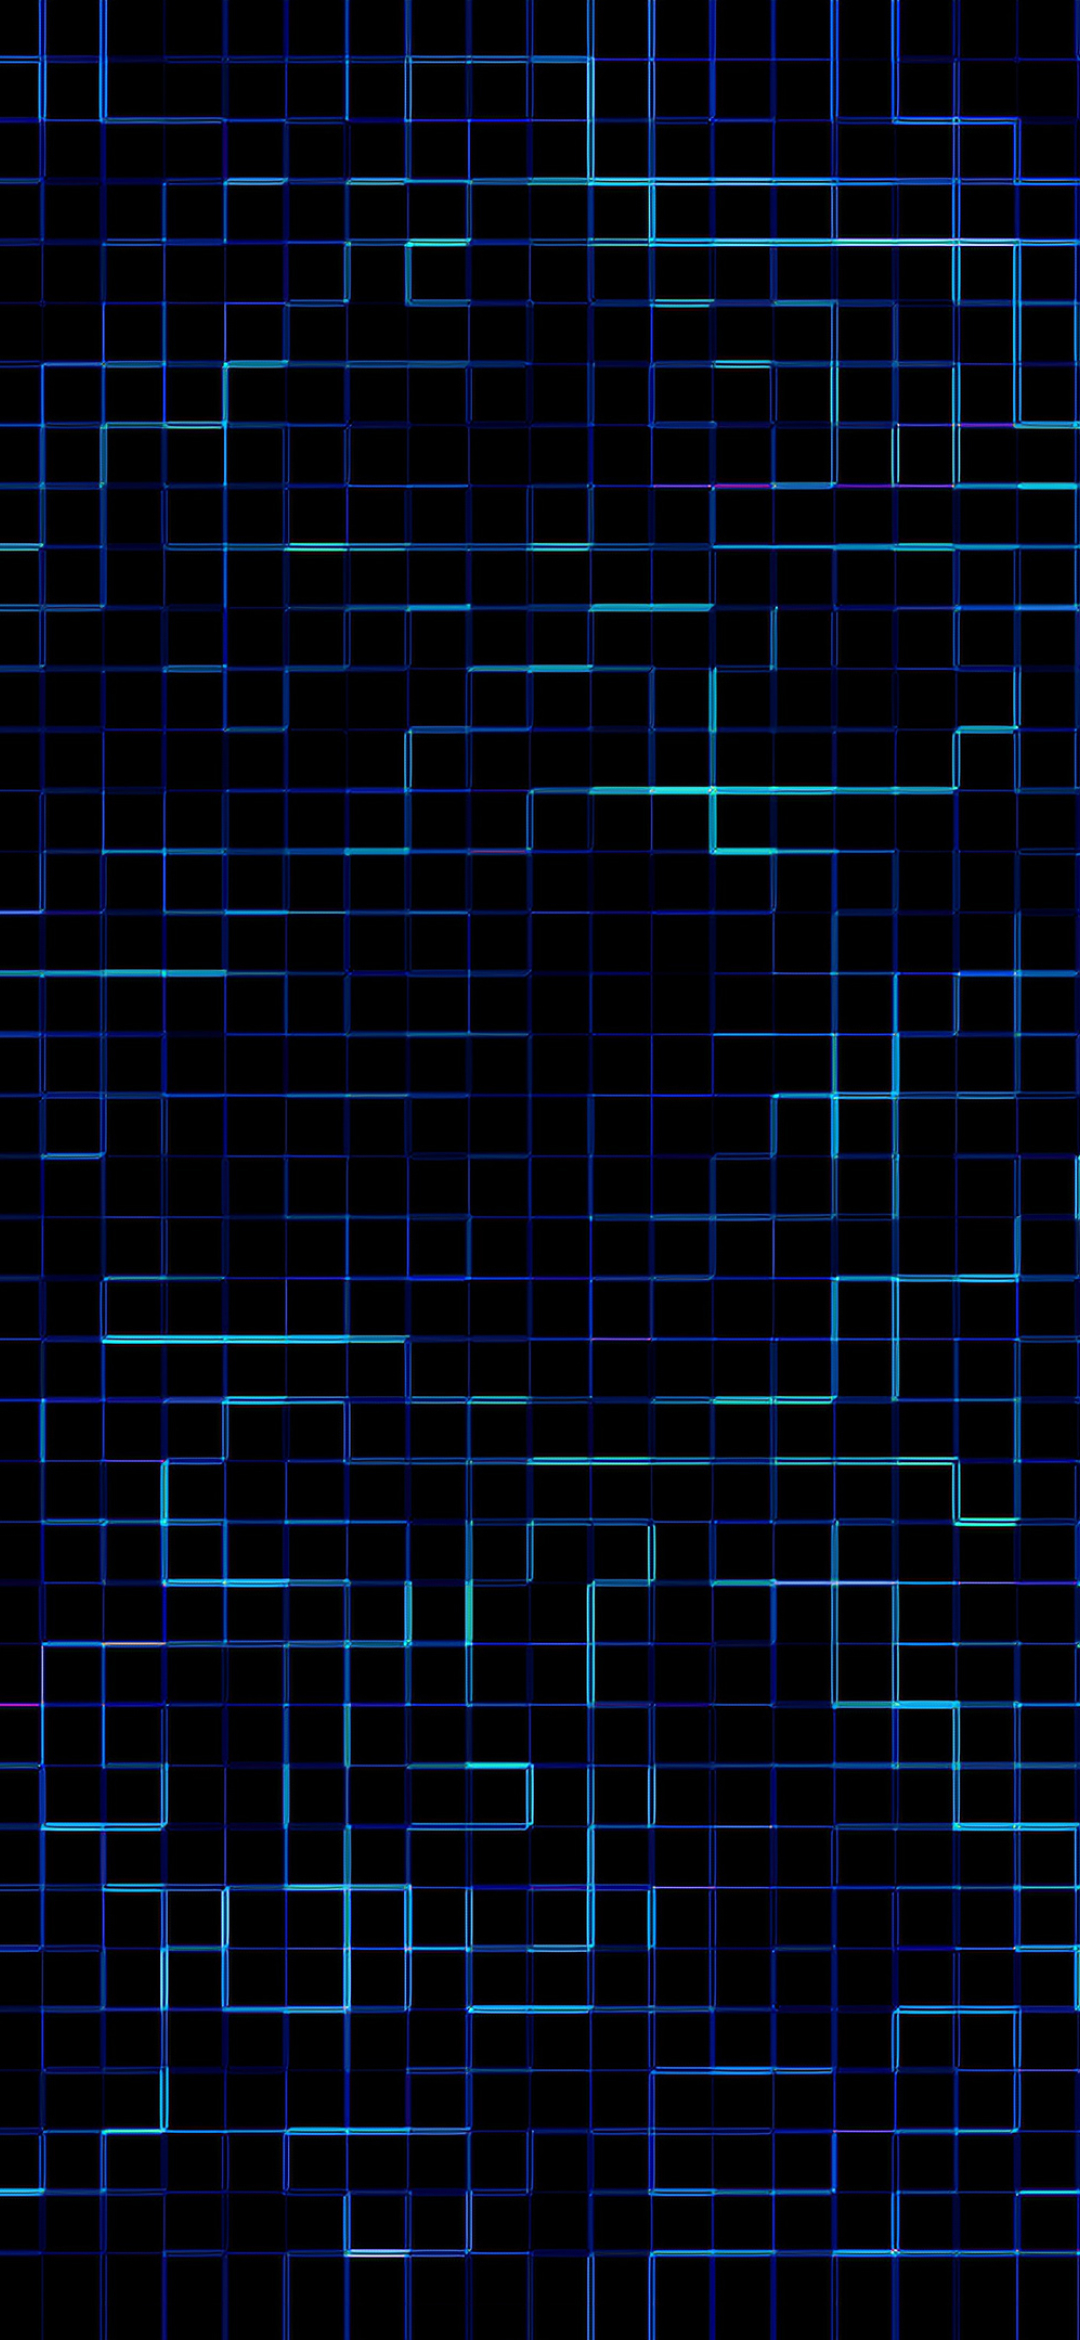 1080x2340 4k Squares Abstract Art 1080x2340 Resolution